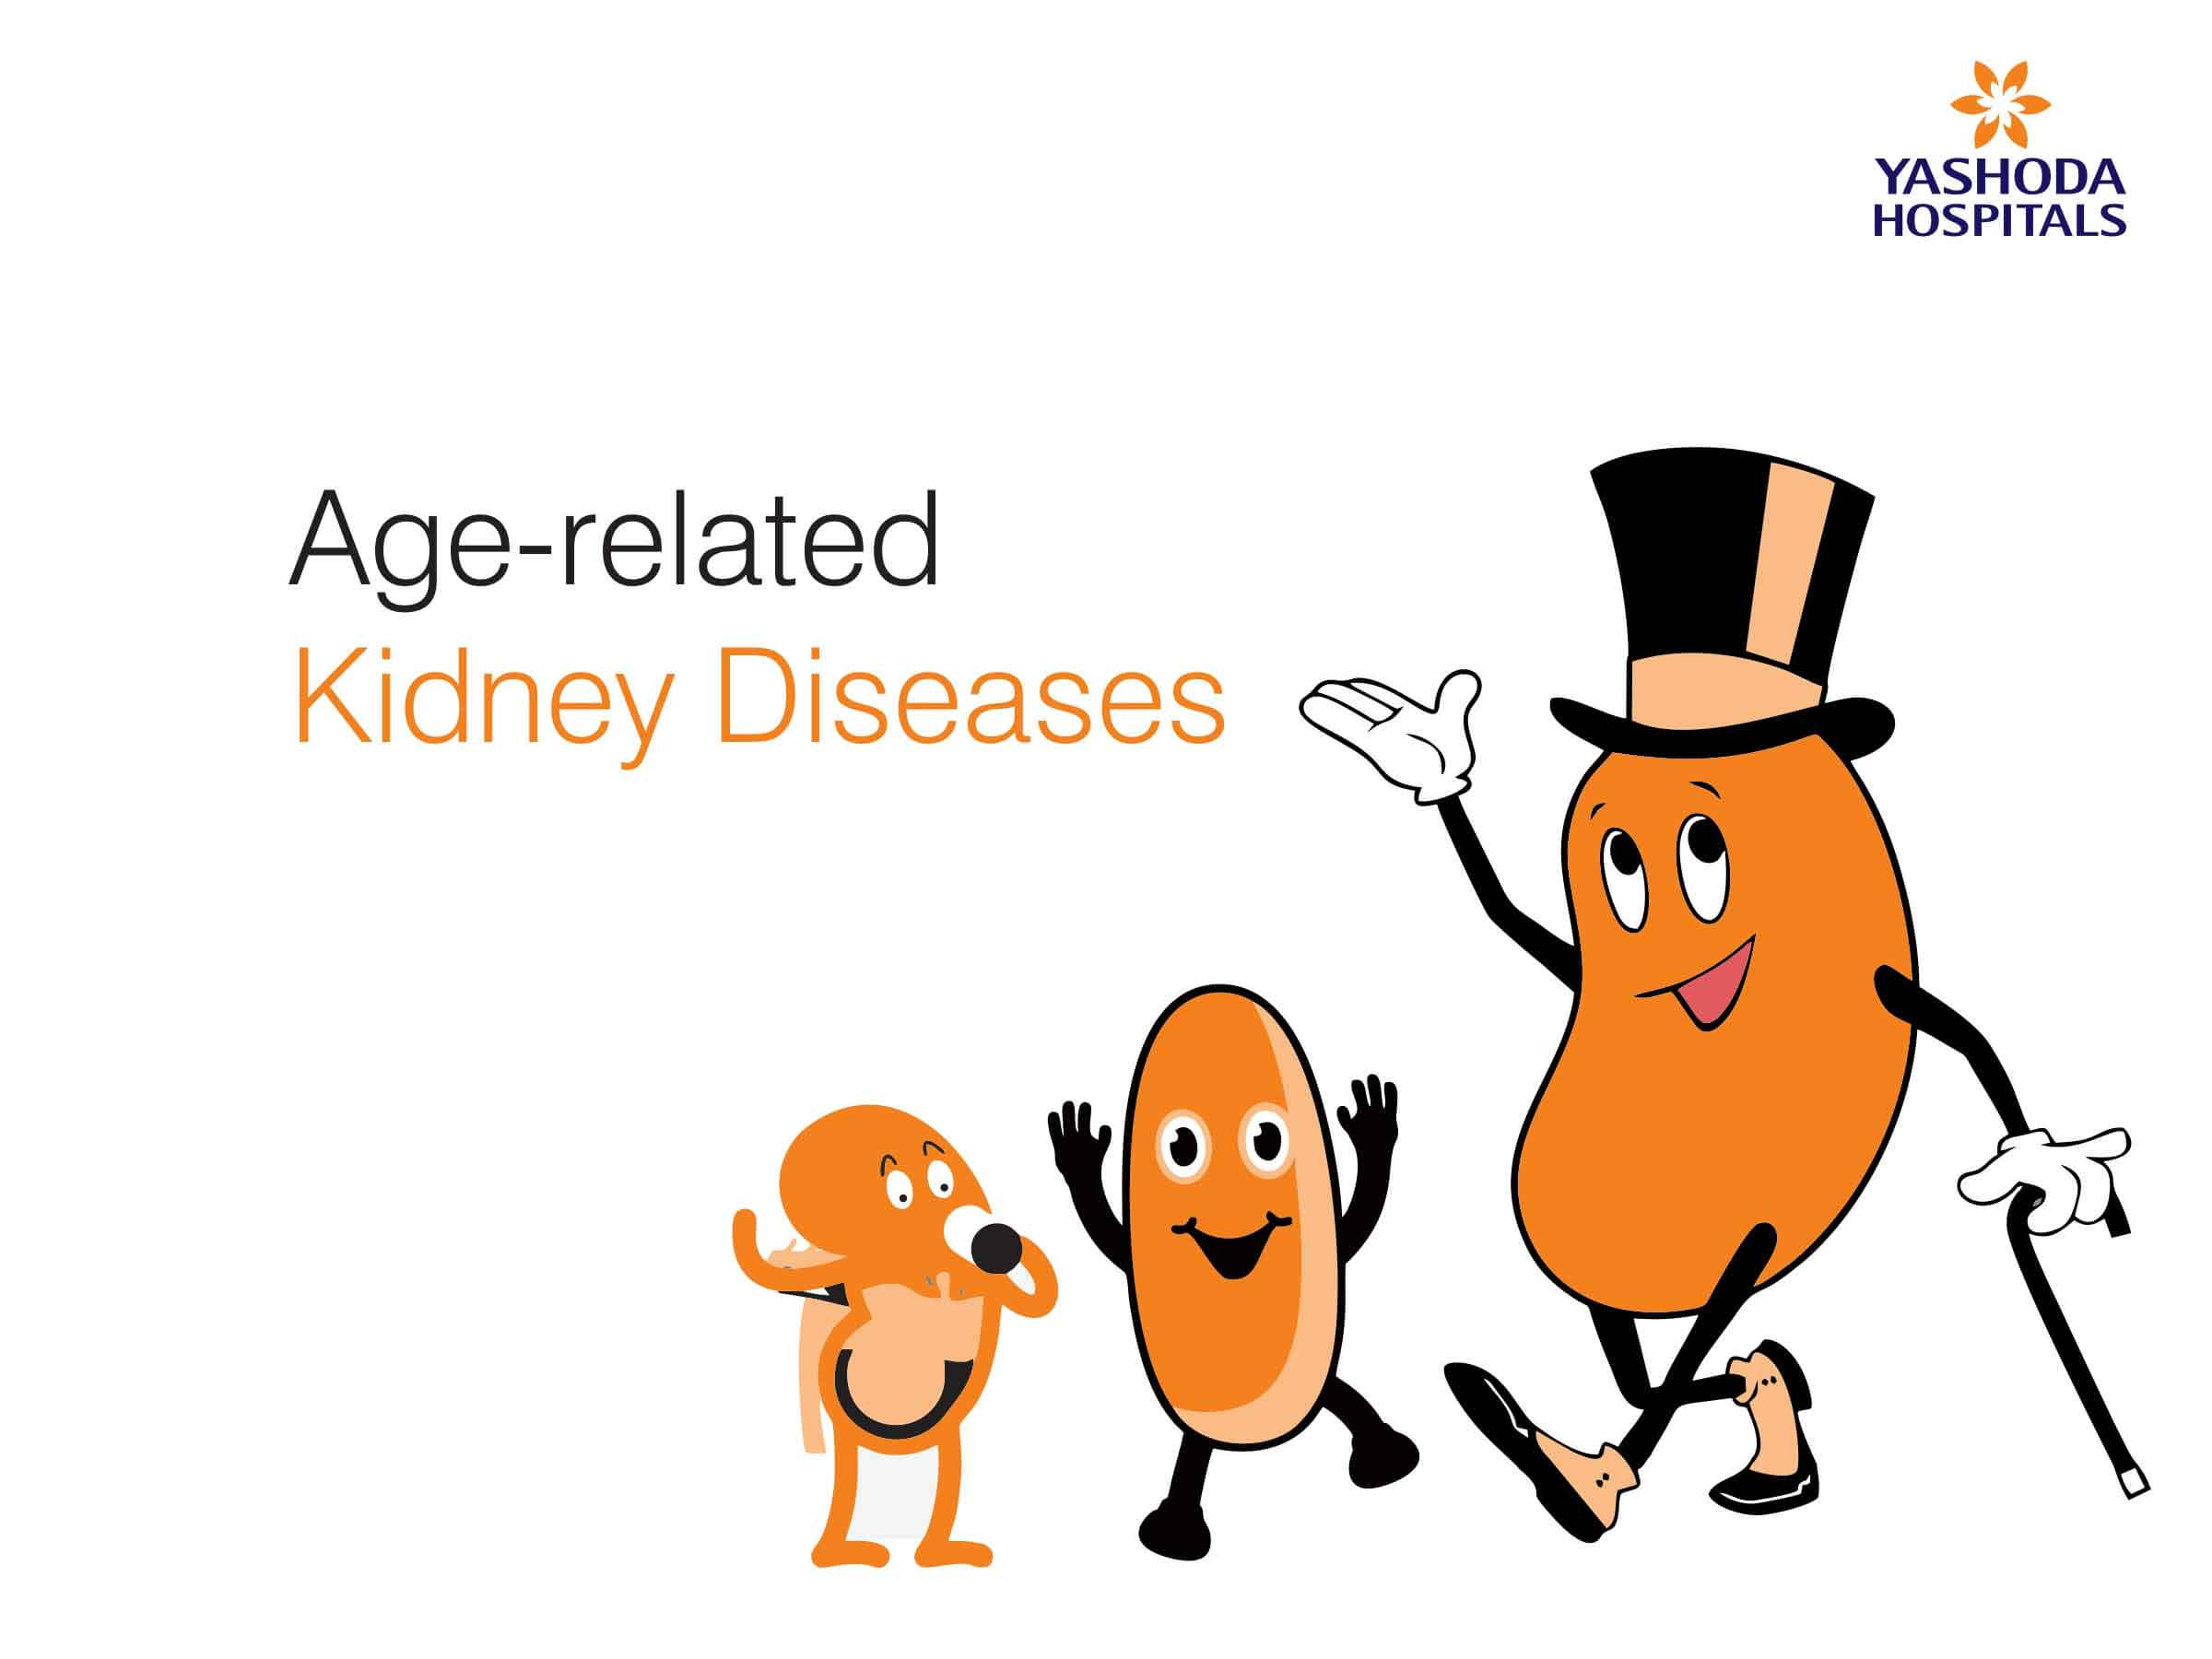 Age related kidney diseases